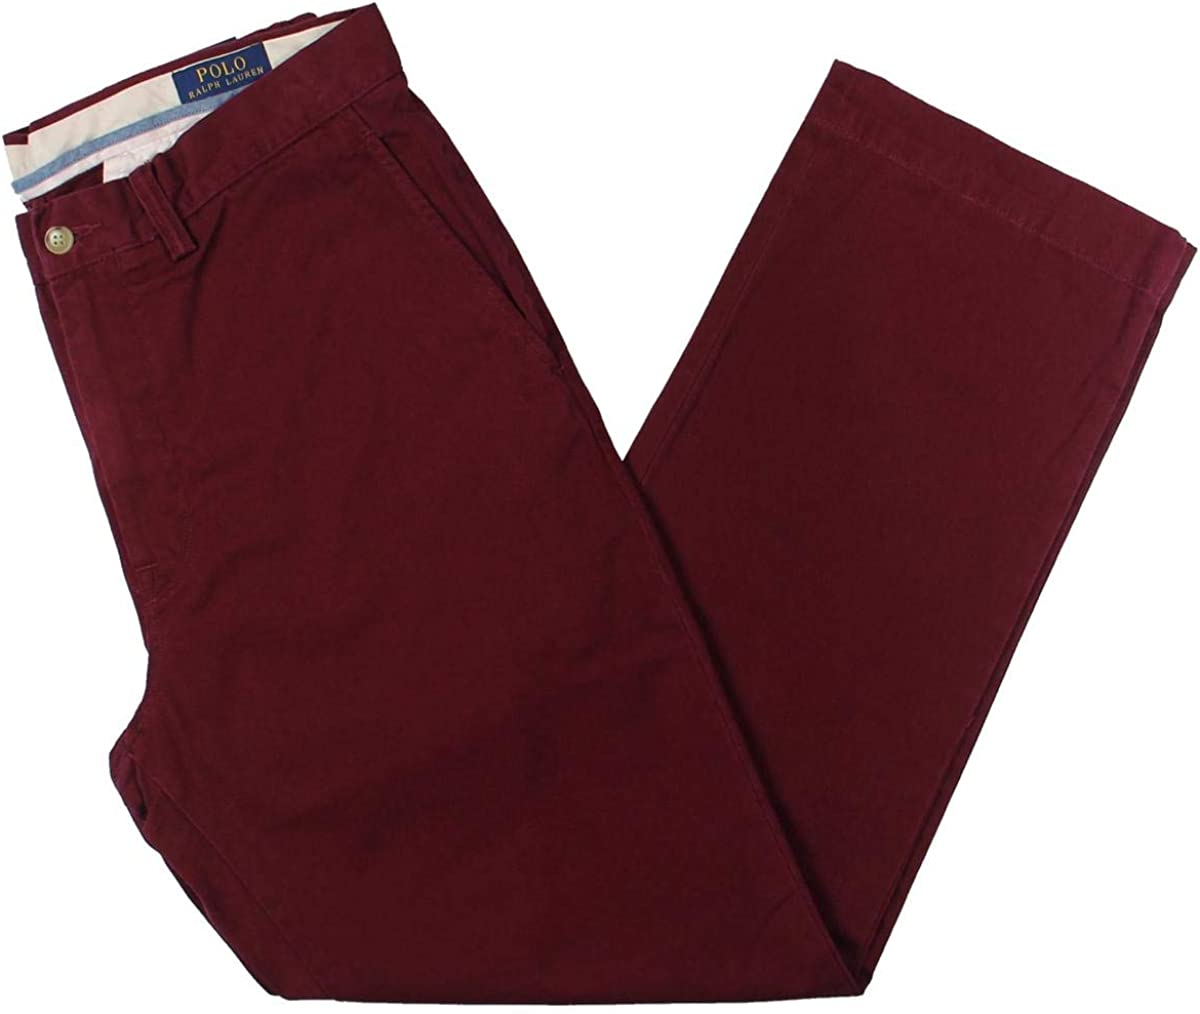 Ralph Lauren Mens Classic Bedford Casual Chino Pants, Red, 36W x 30L